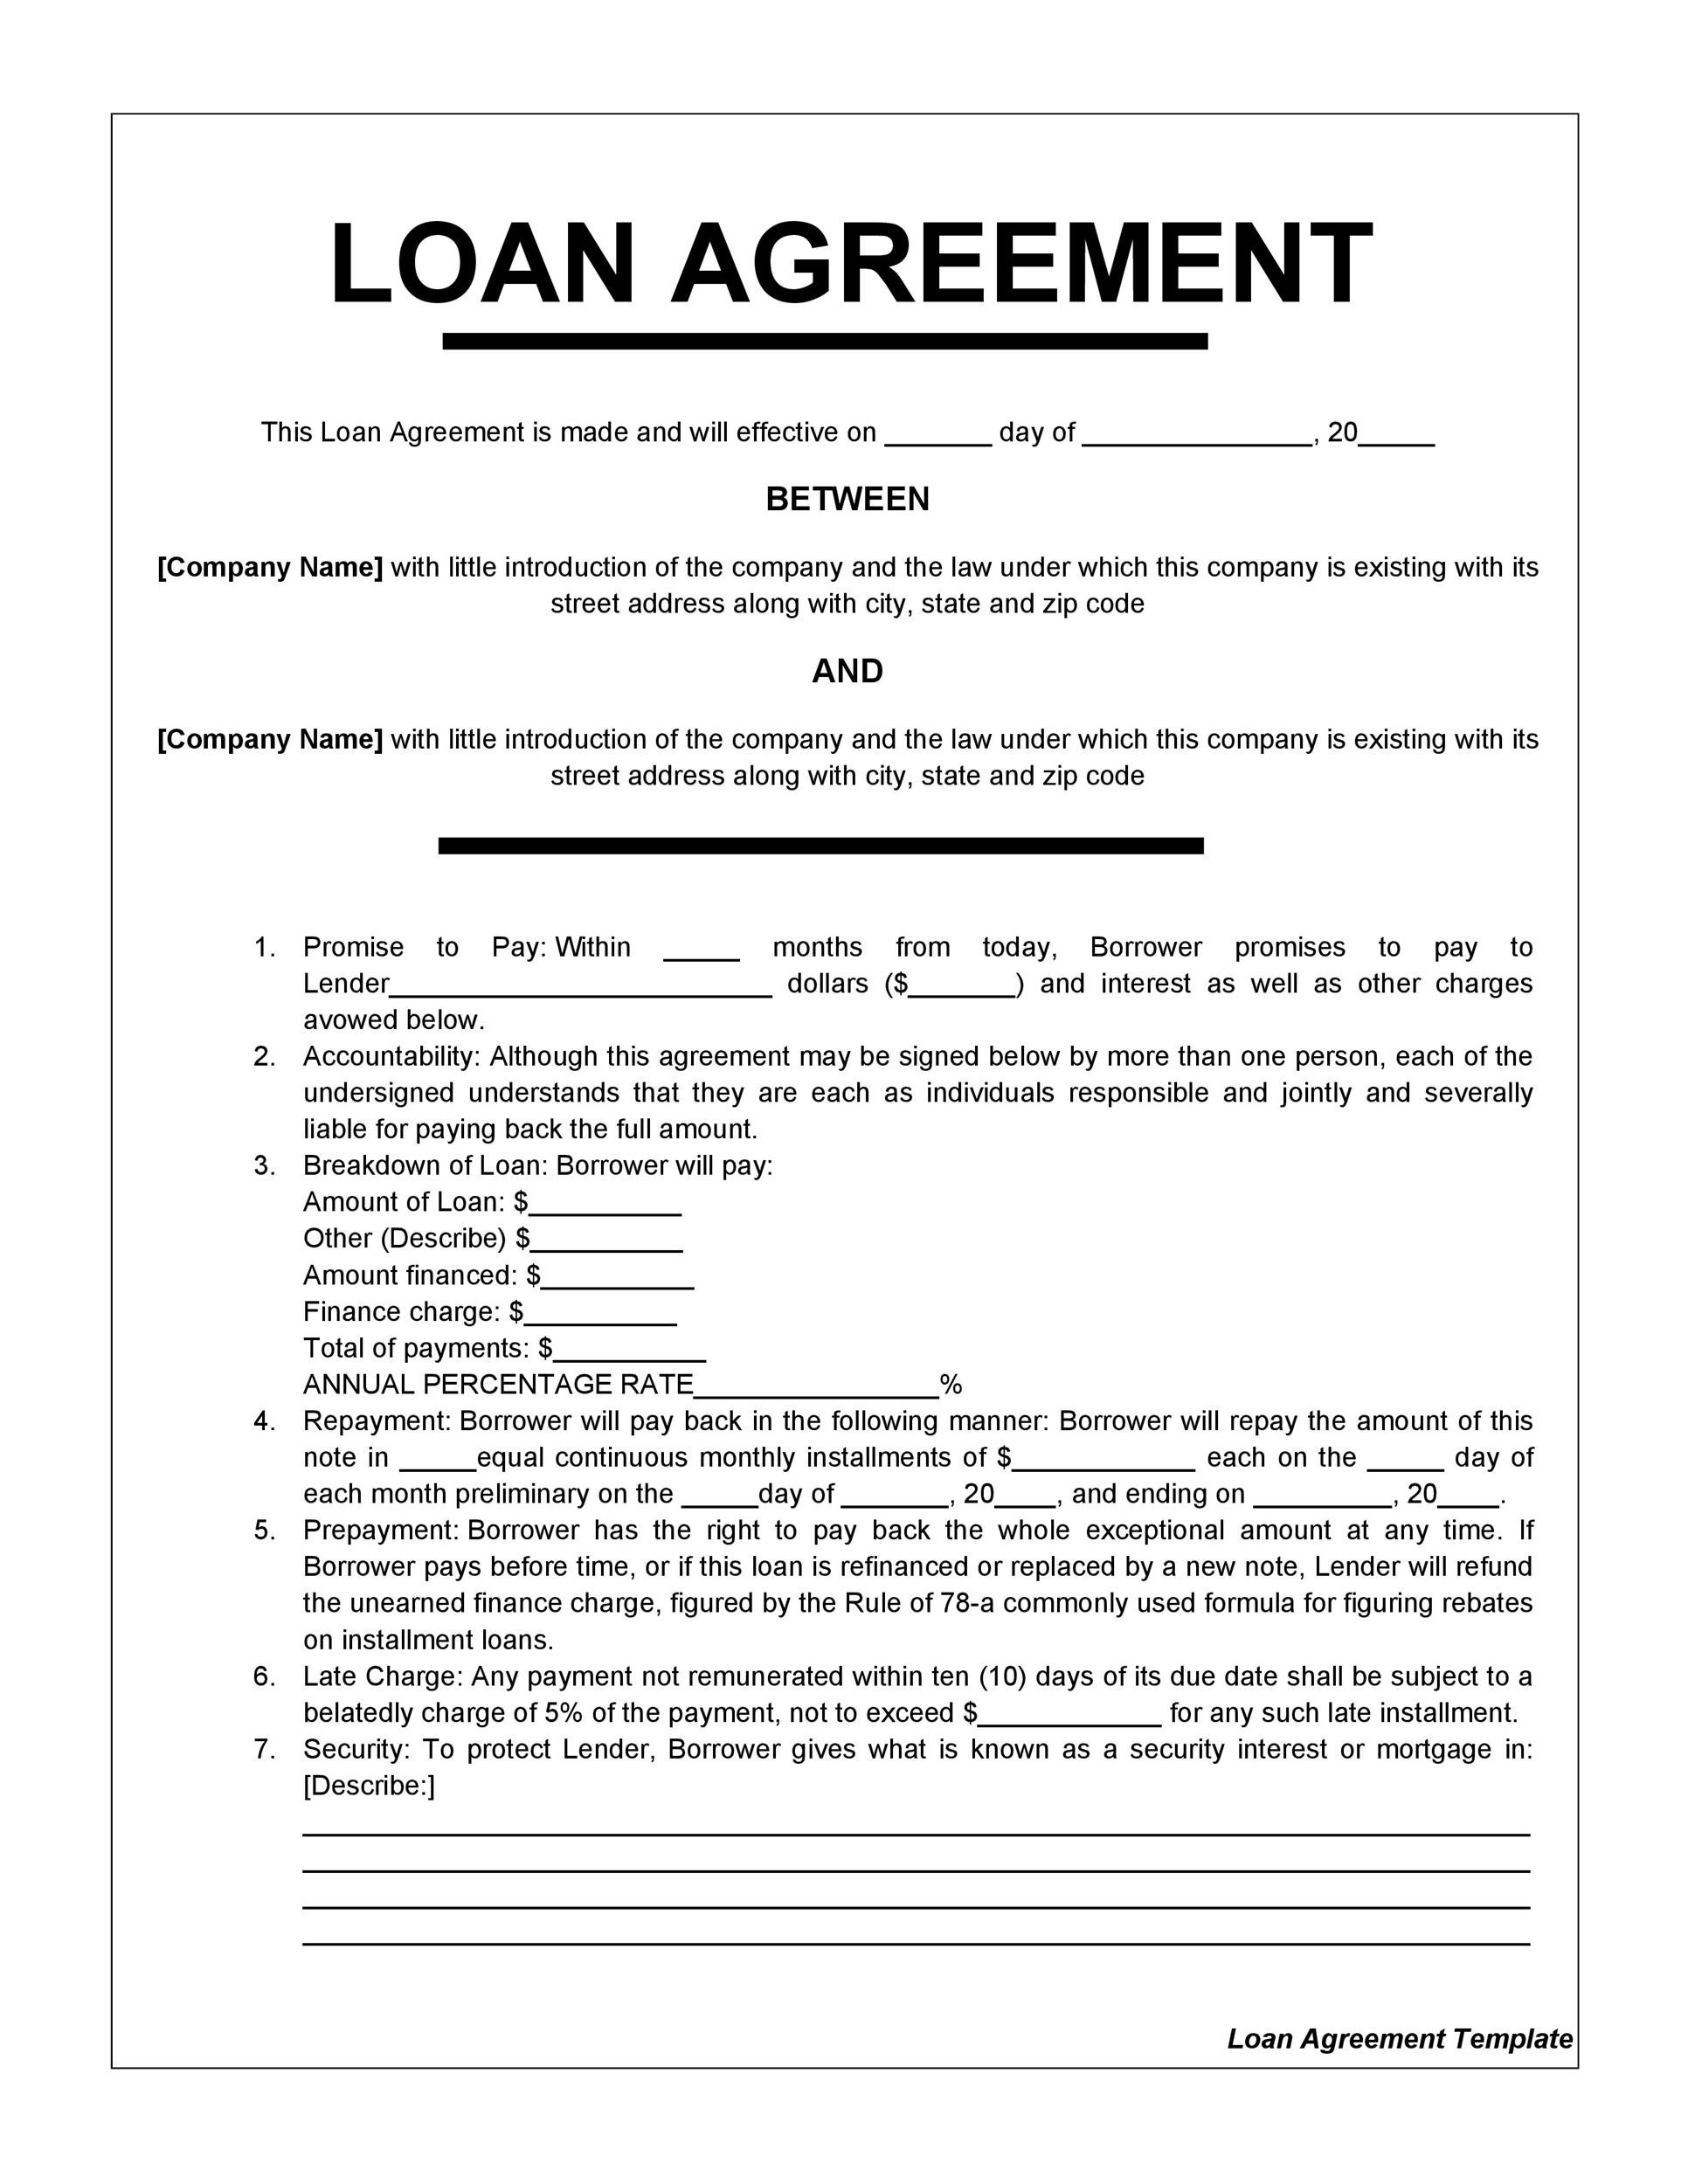 40 free loan agreement templates word pdf template lab free loan agreement template 07 flashek Choice Image